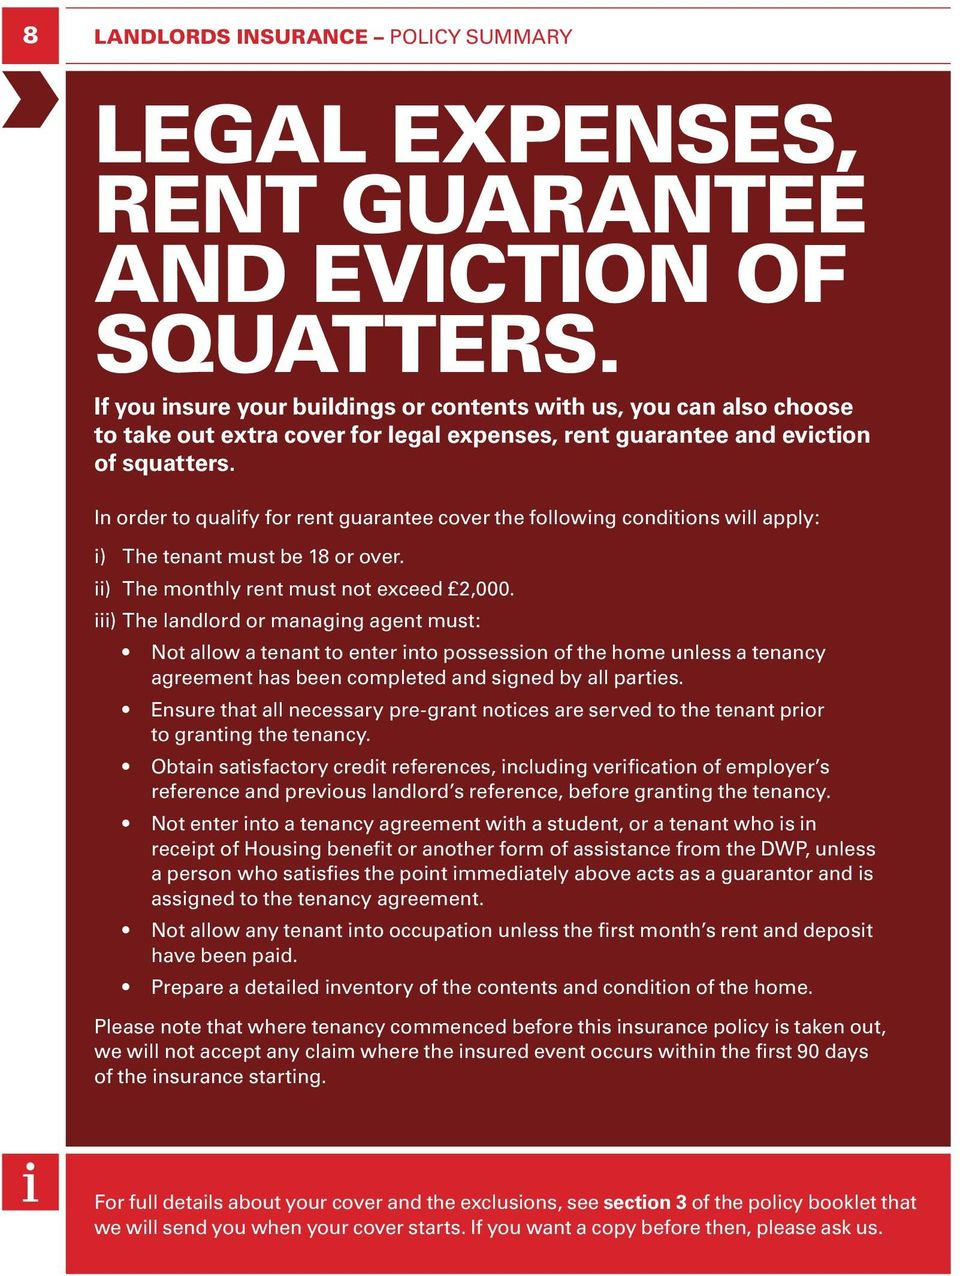 In order to qualify for rent guarantee cover the following conditions will apply: i) The tenant must be 18 or over. ii) The monthly rent must not exceed 2,000.